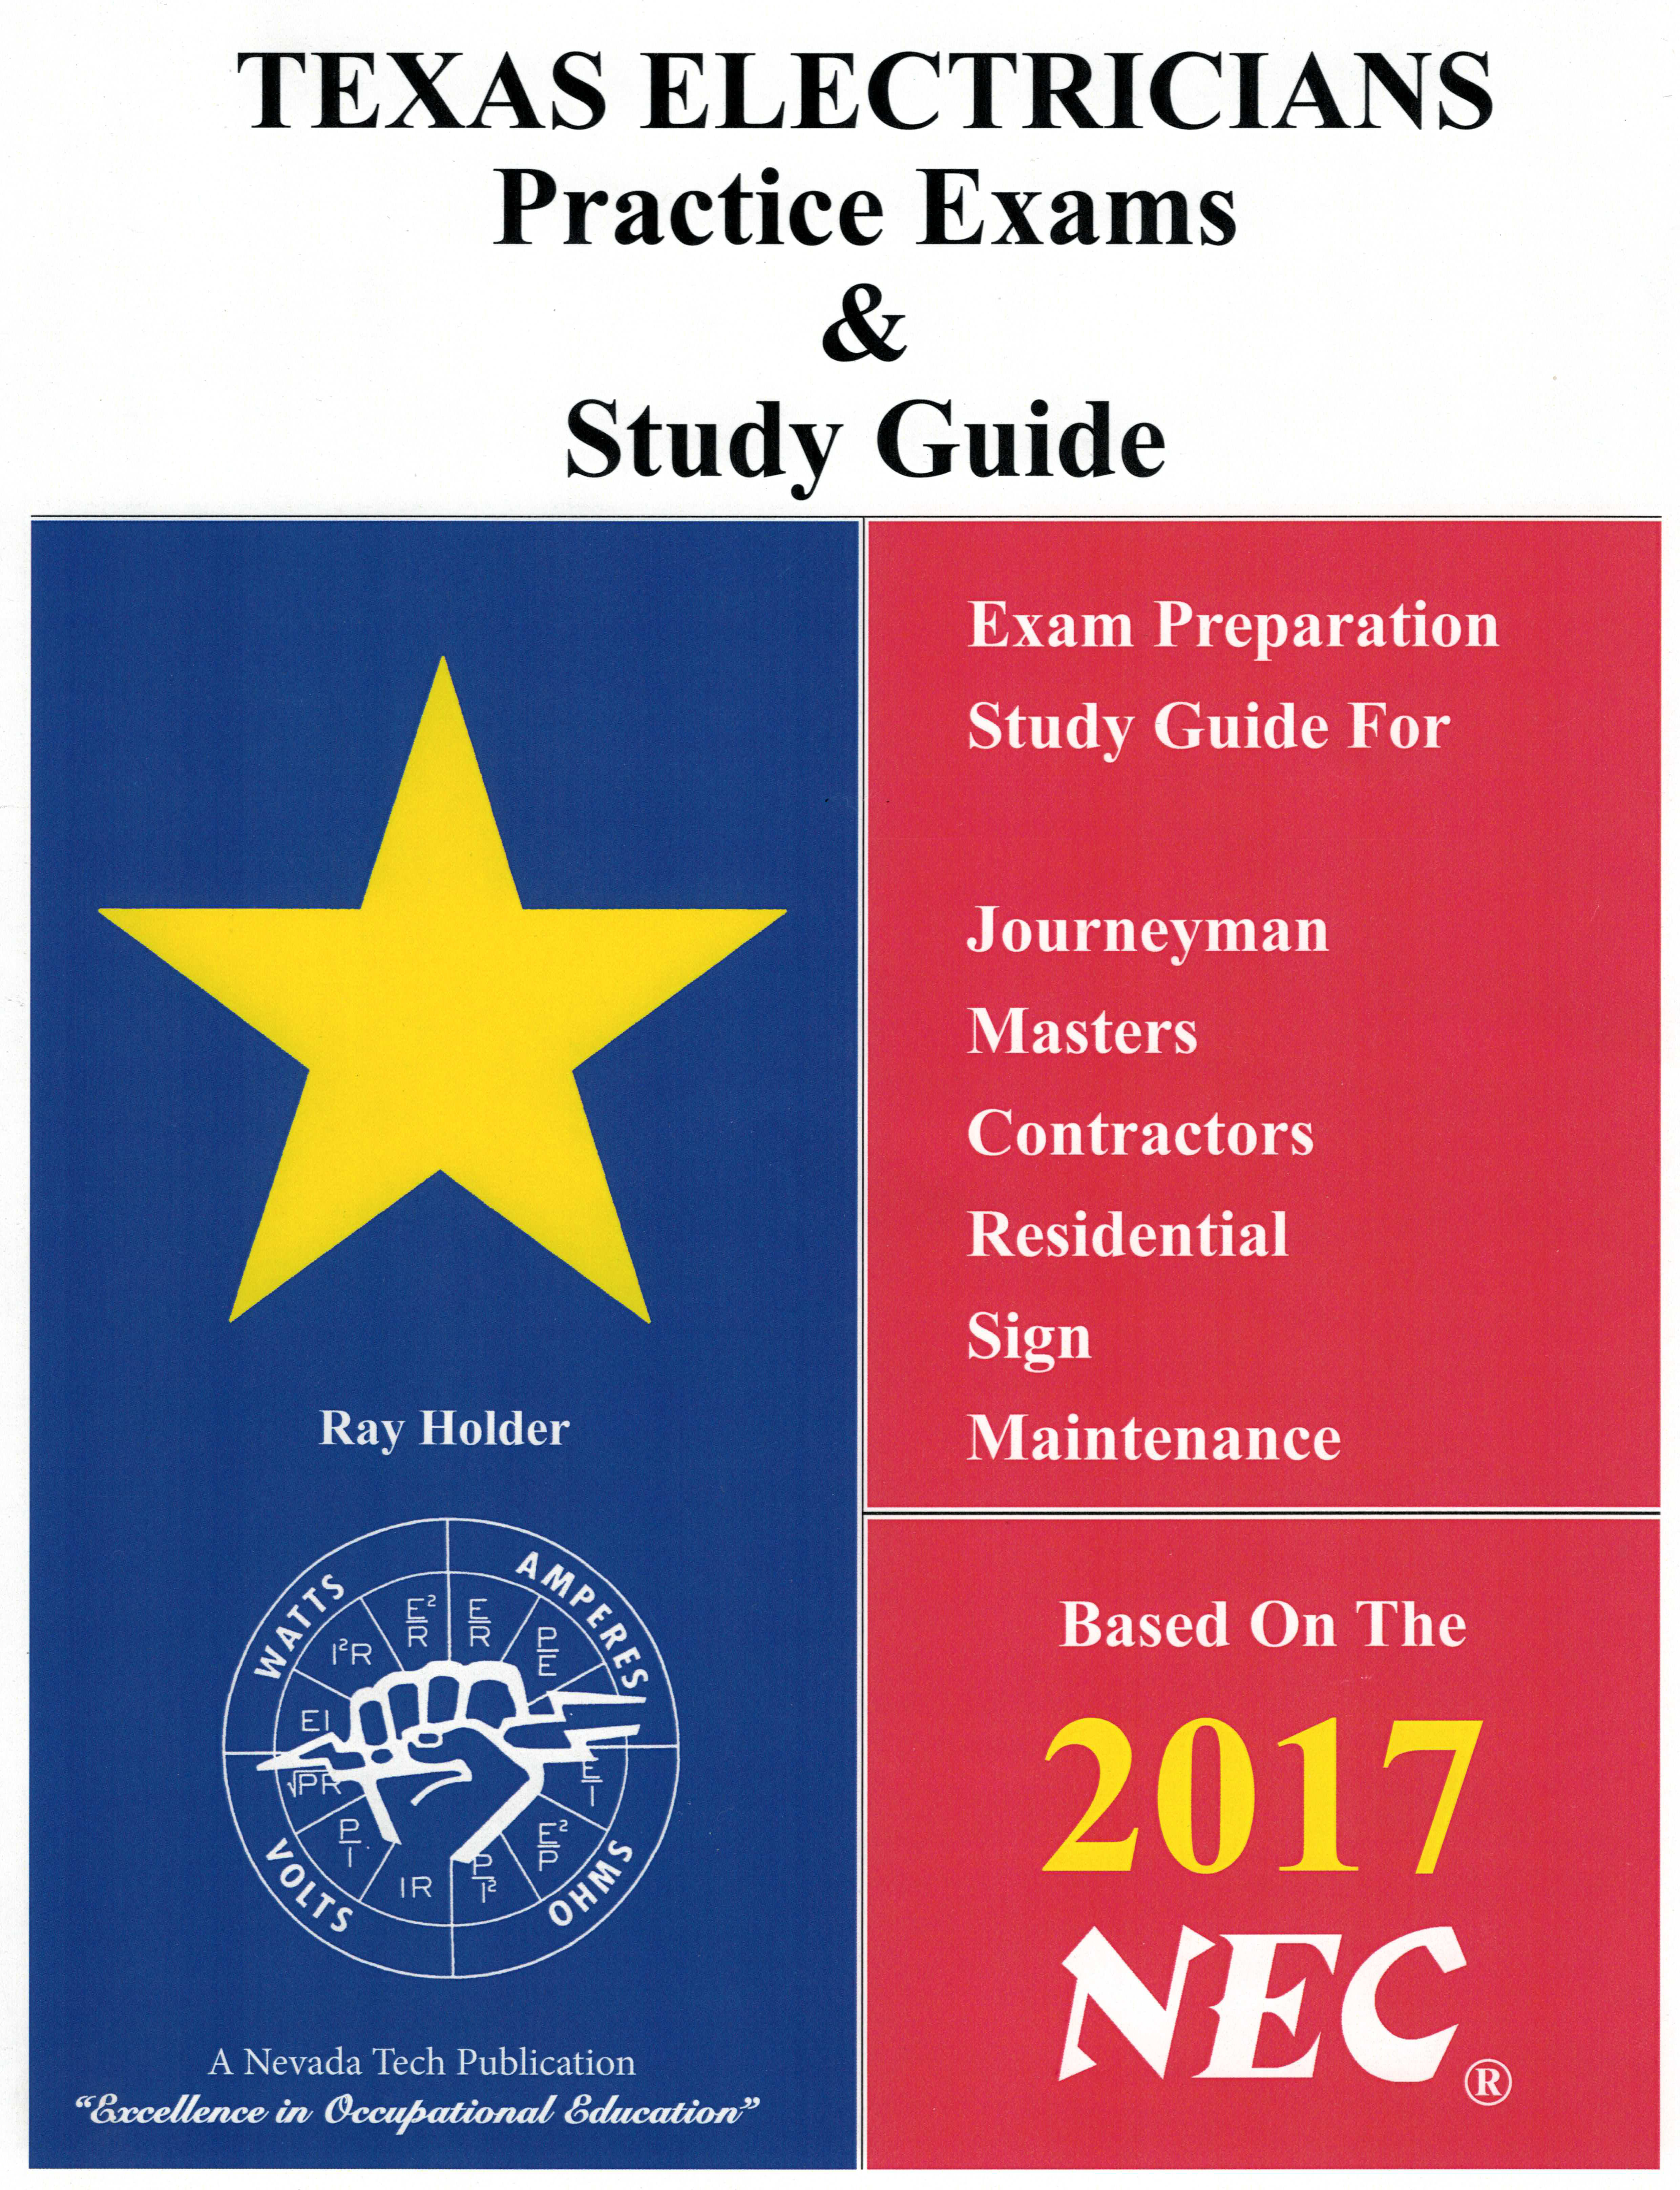 2017 texas electricians practice exams and study guide ray 2017 texas electricians practice exams and study guide xflitez Image collections